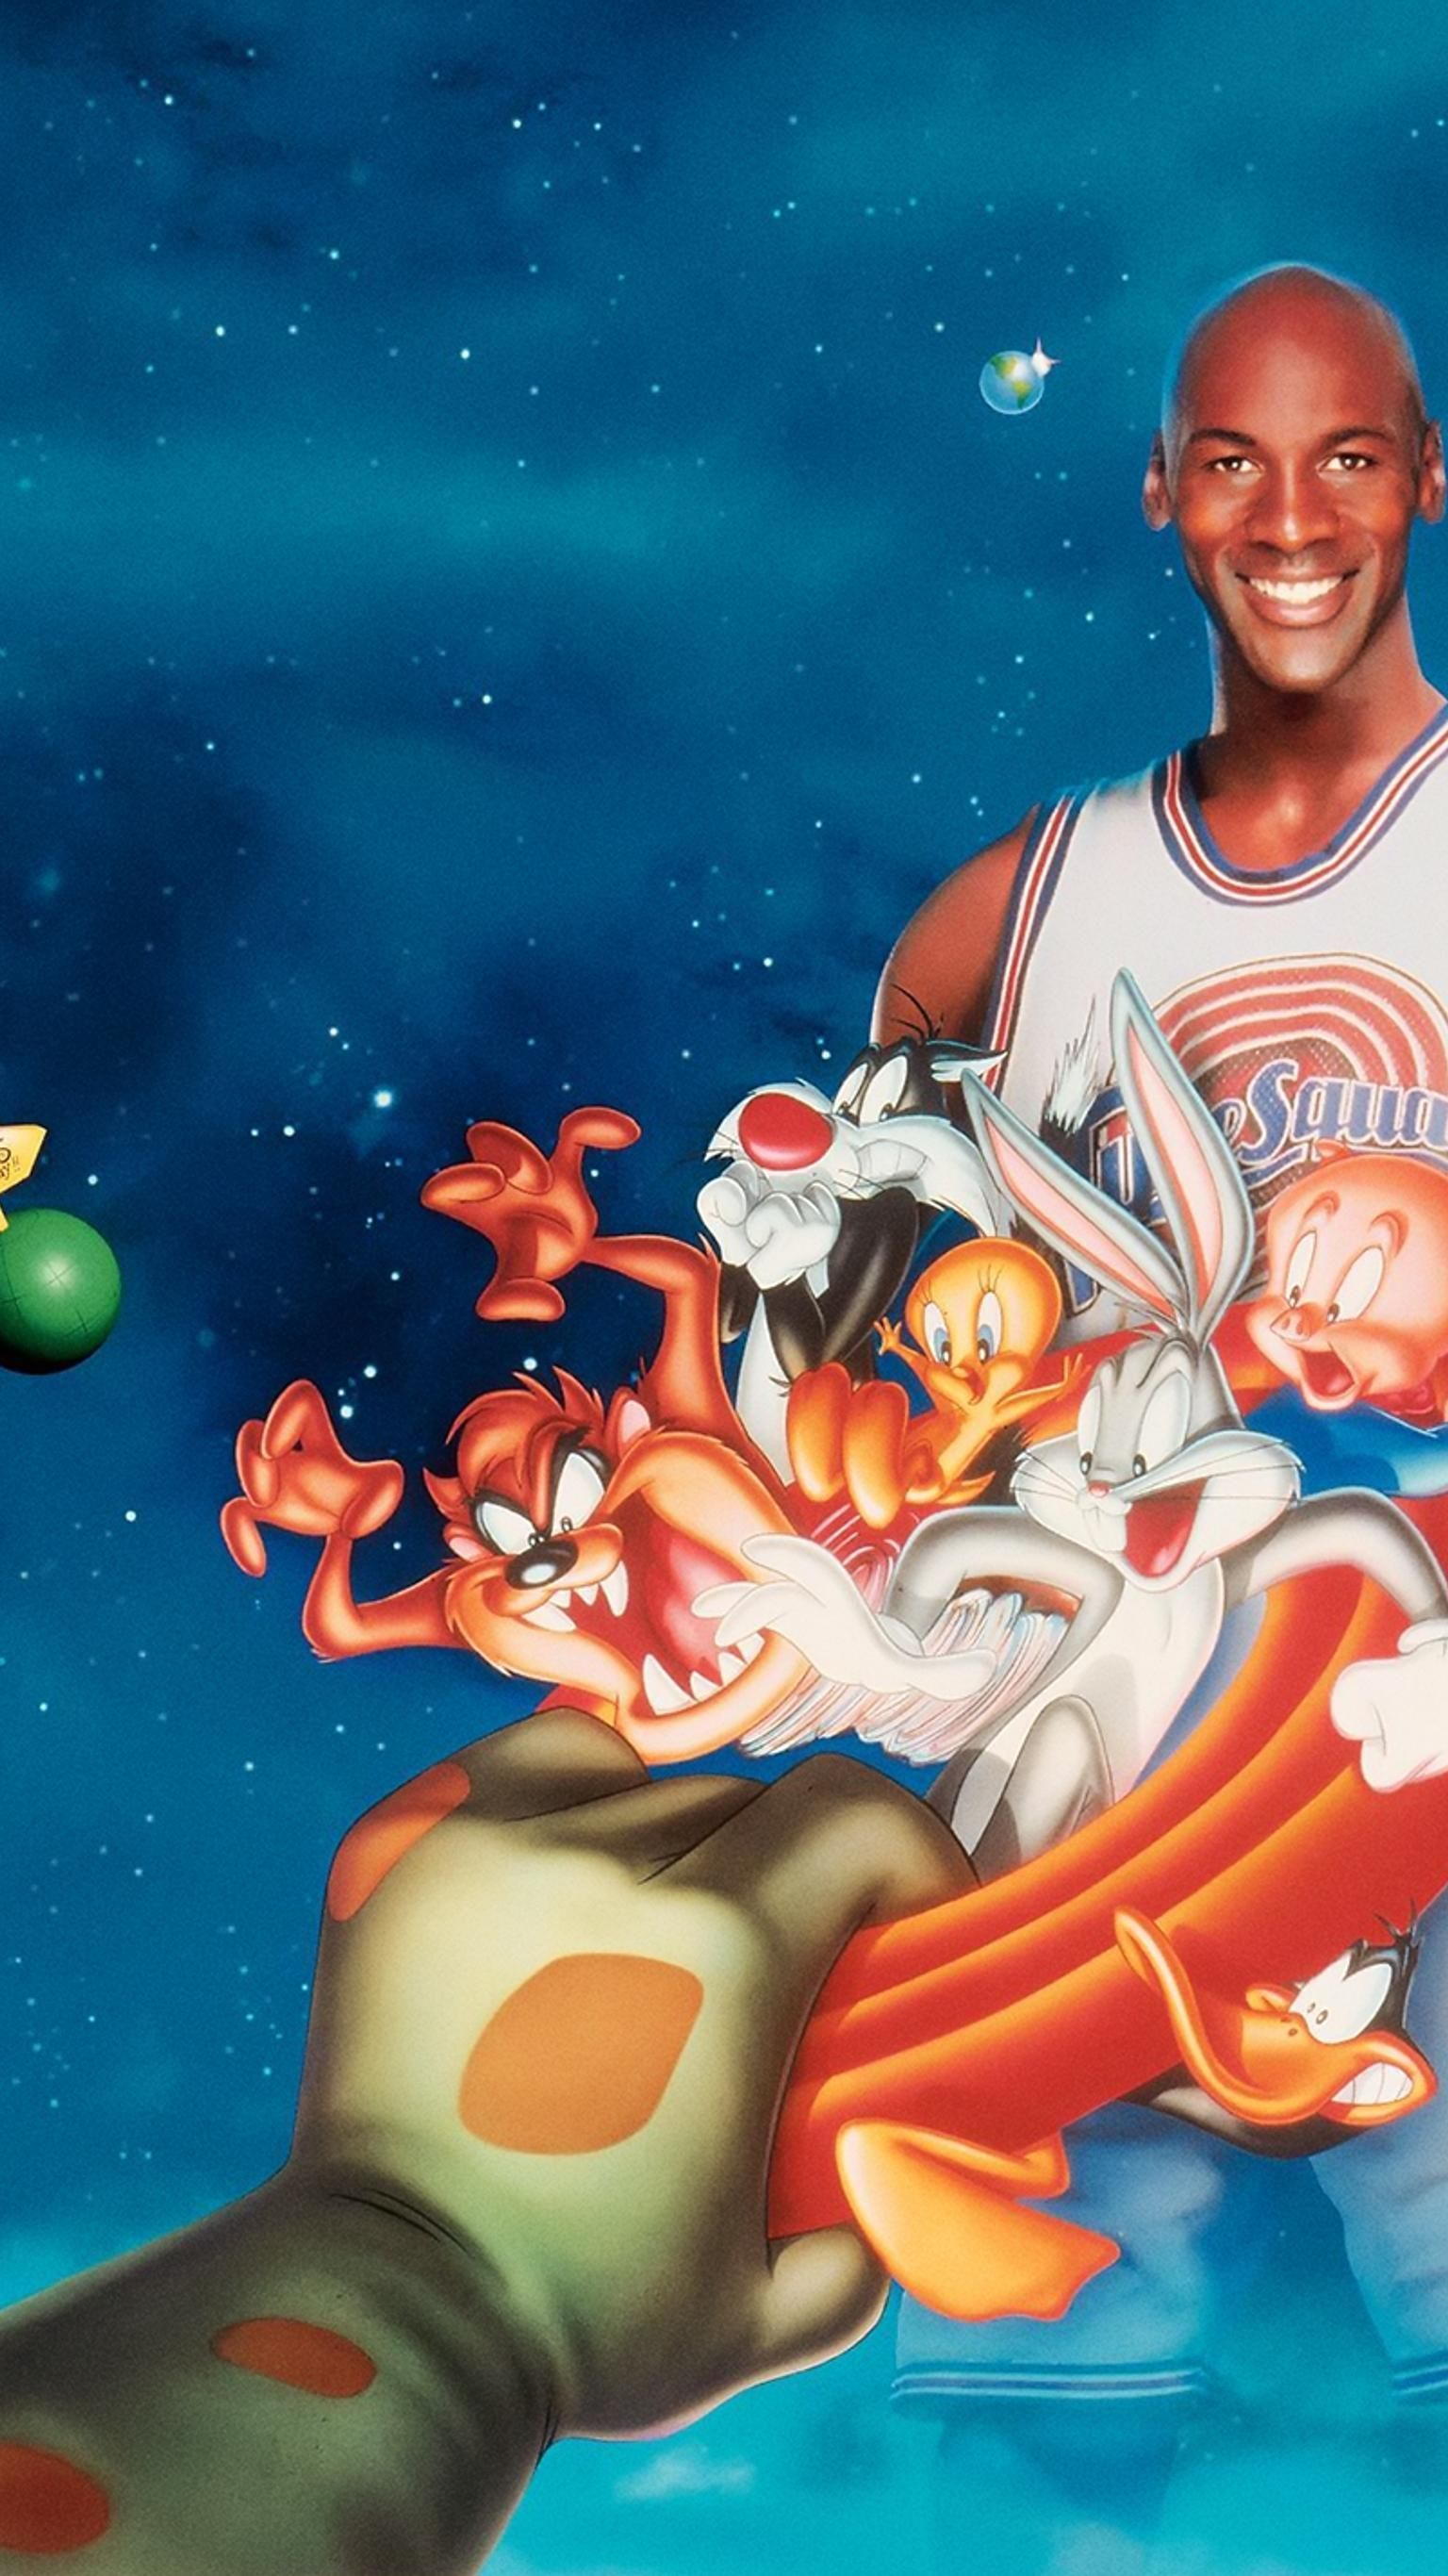 Space Jam Movie Wallpapers   Top Space Jam Movie Backgrounds 1536x2732